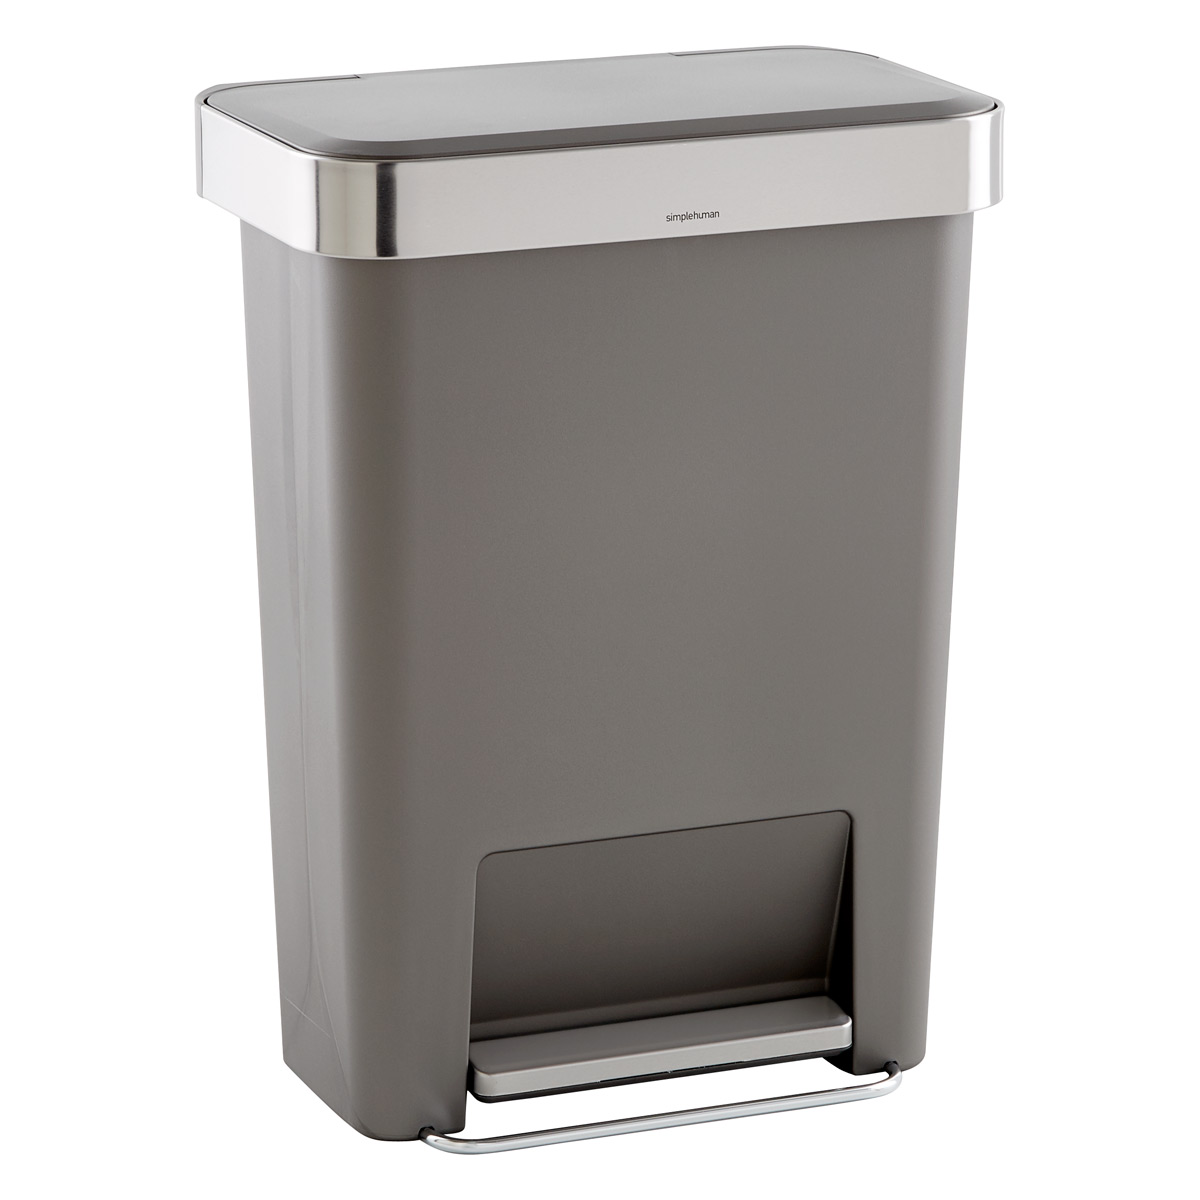 grey 12 gal rectangular trash can the container store. Black Bedroom Furniture Sets. Home Design Ideas